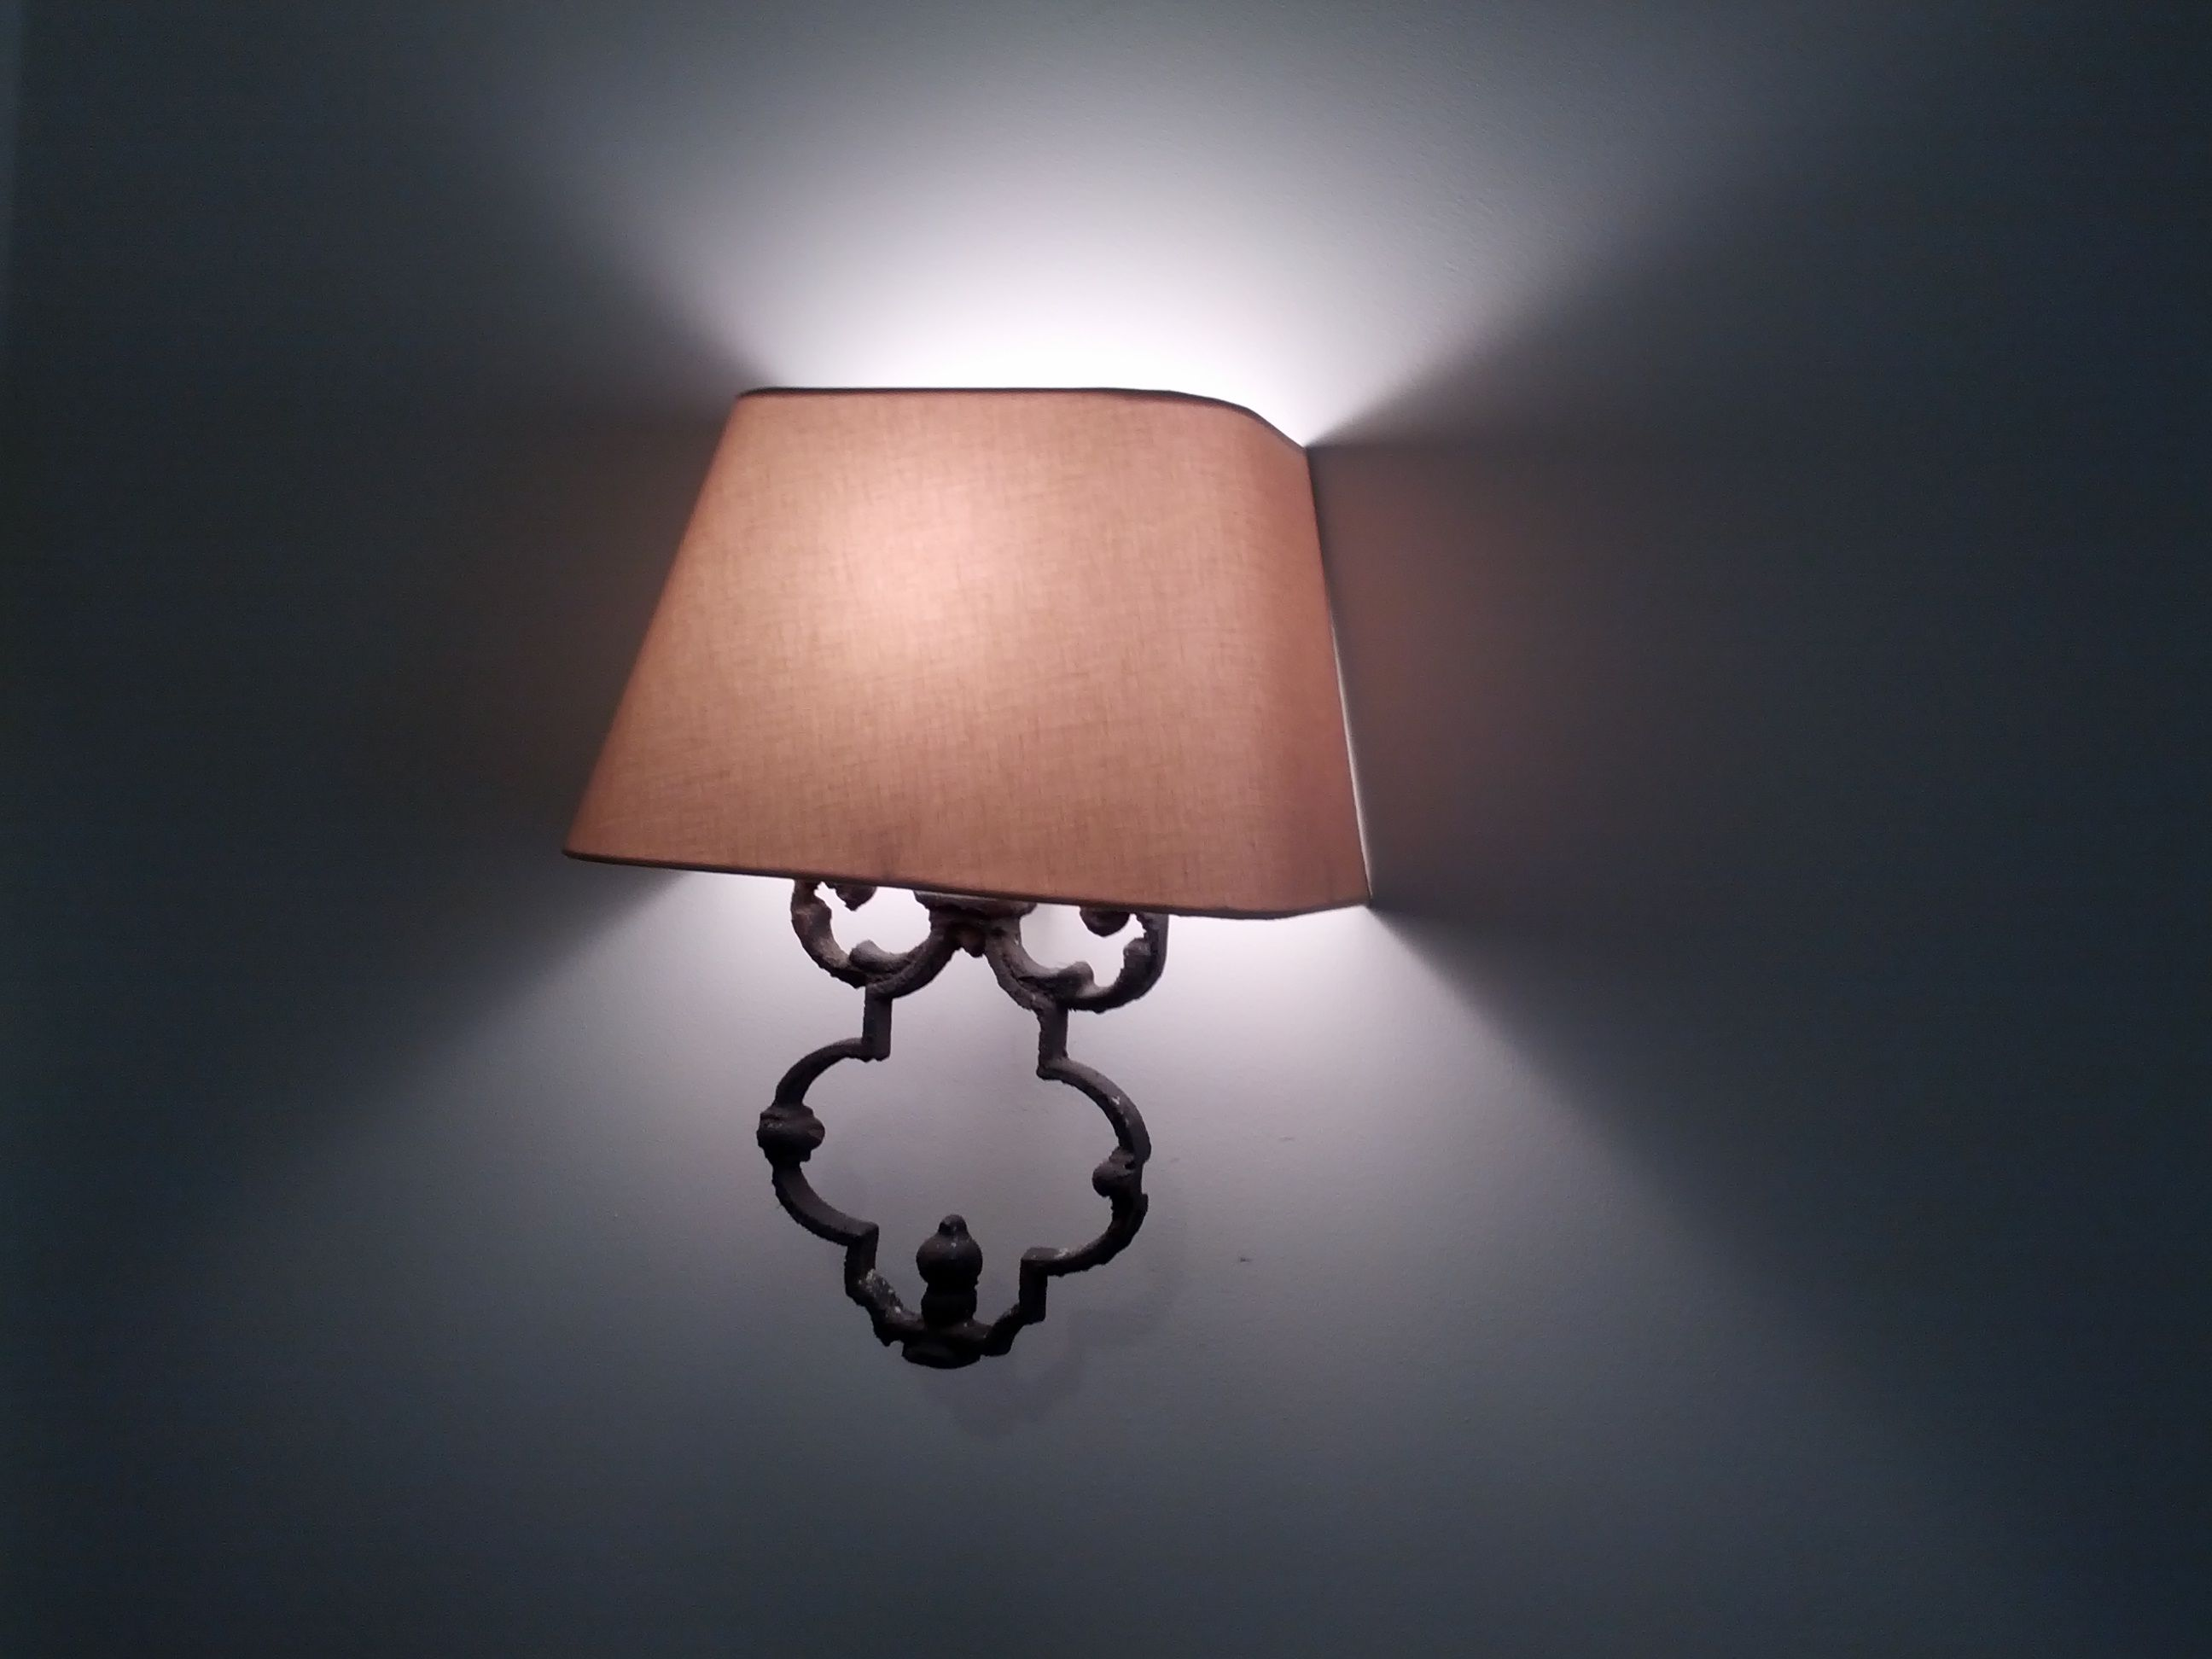 From Bethune STreet: 2 sconces like this